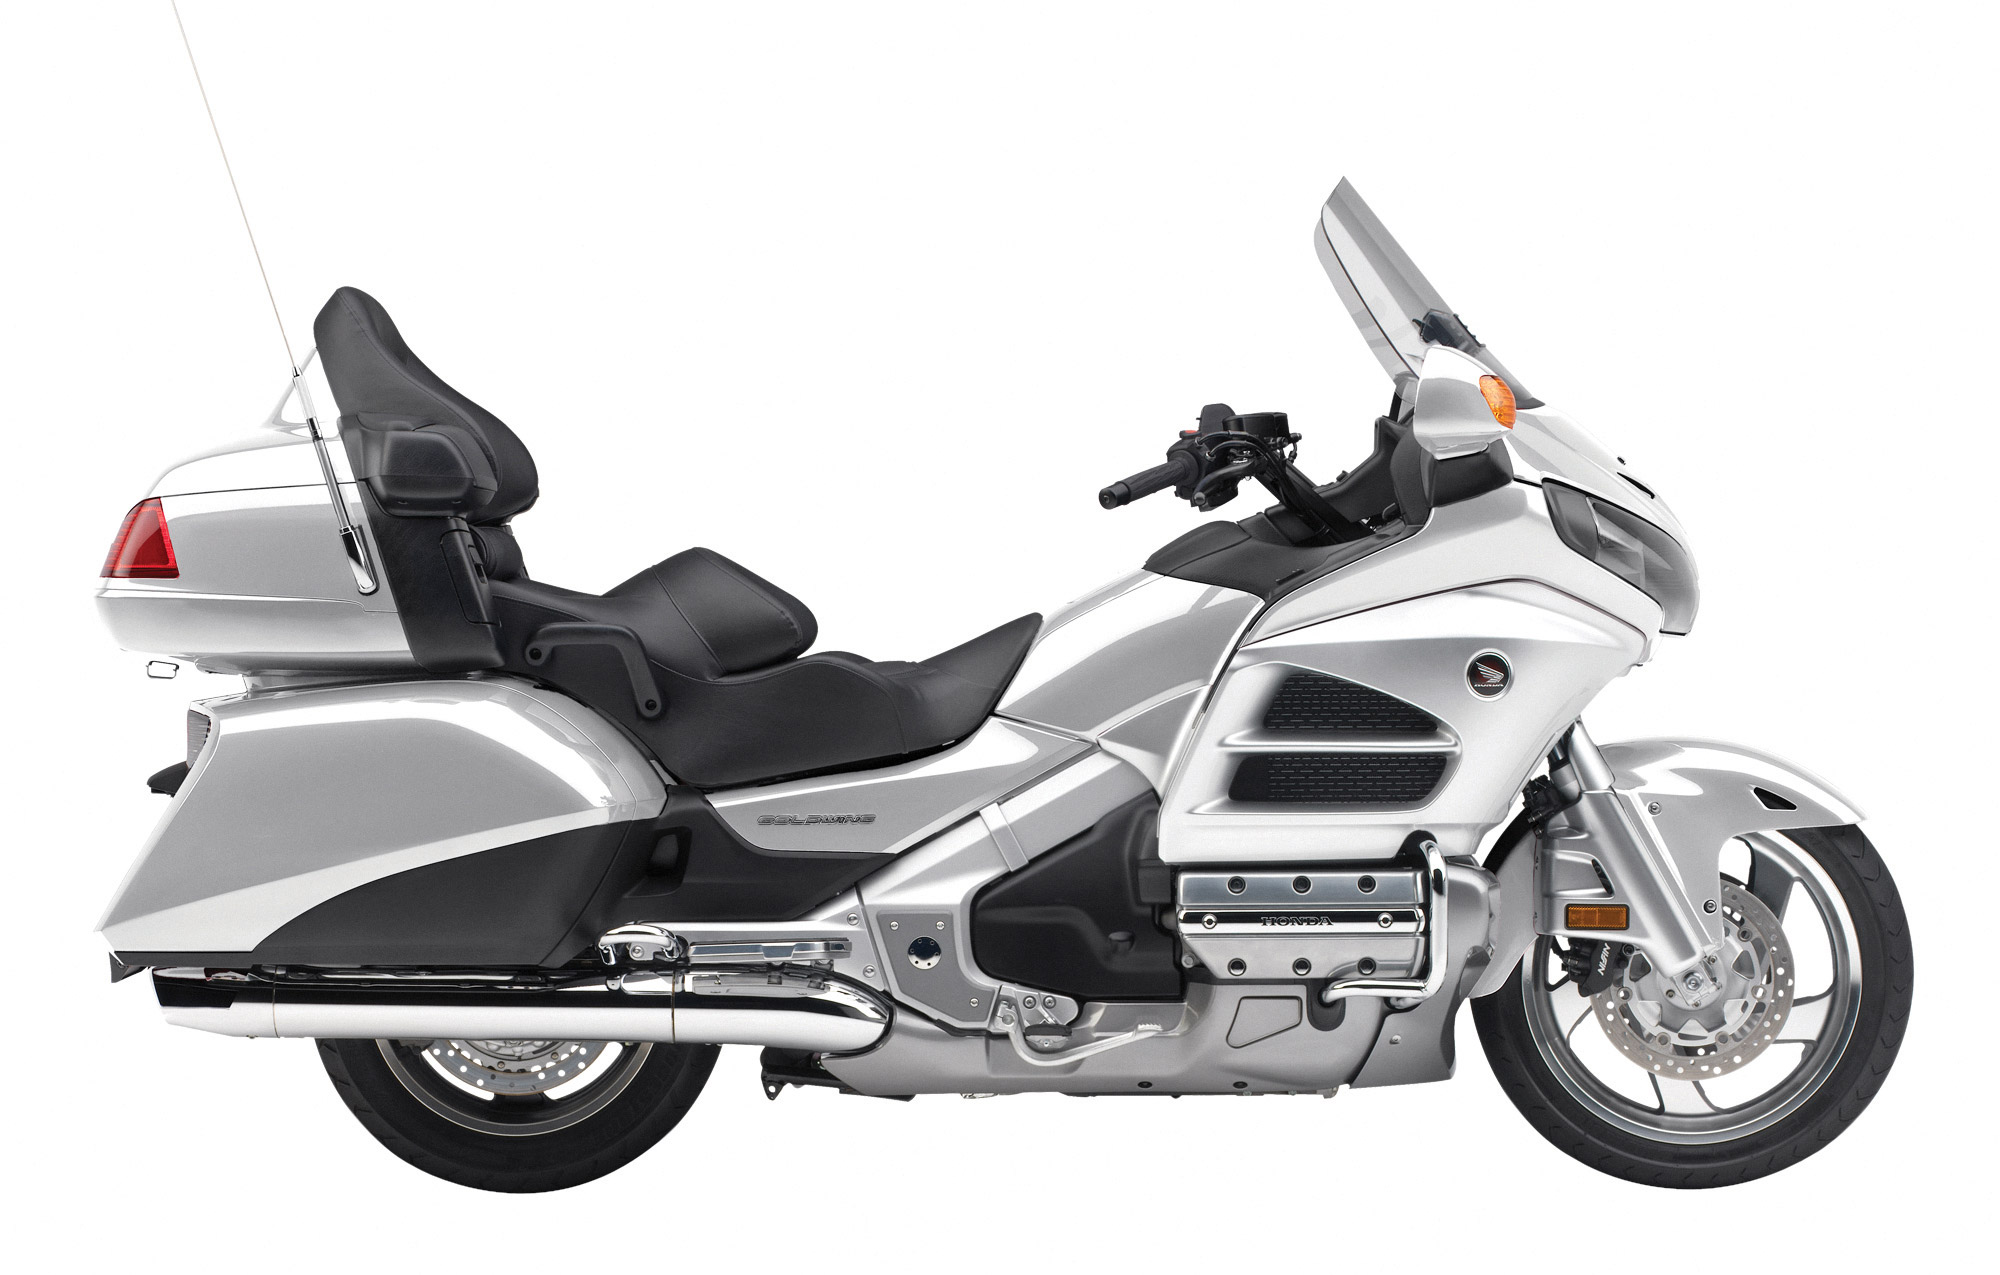 Honda GL 1800 Gold Wing 2013 images #83164